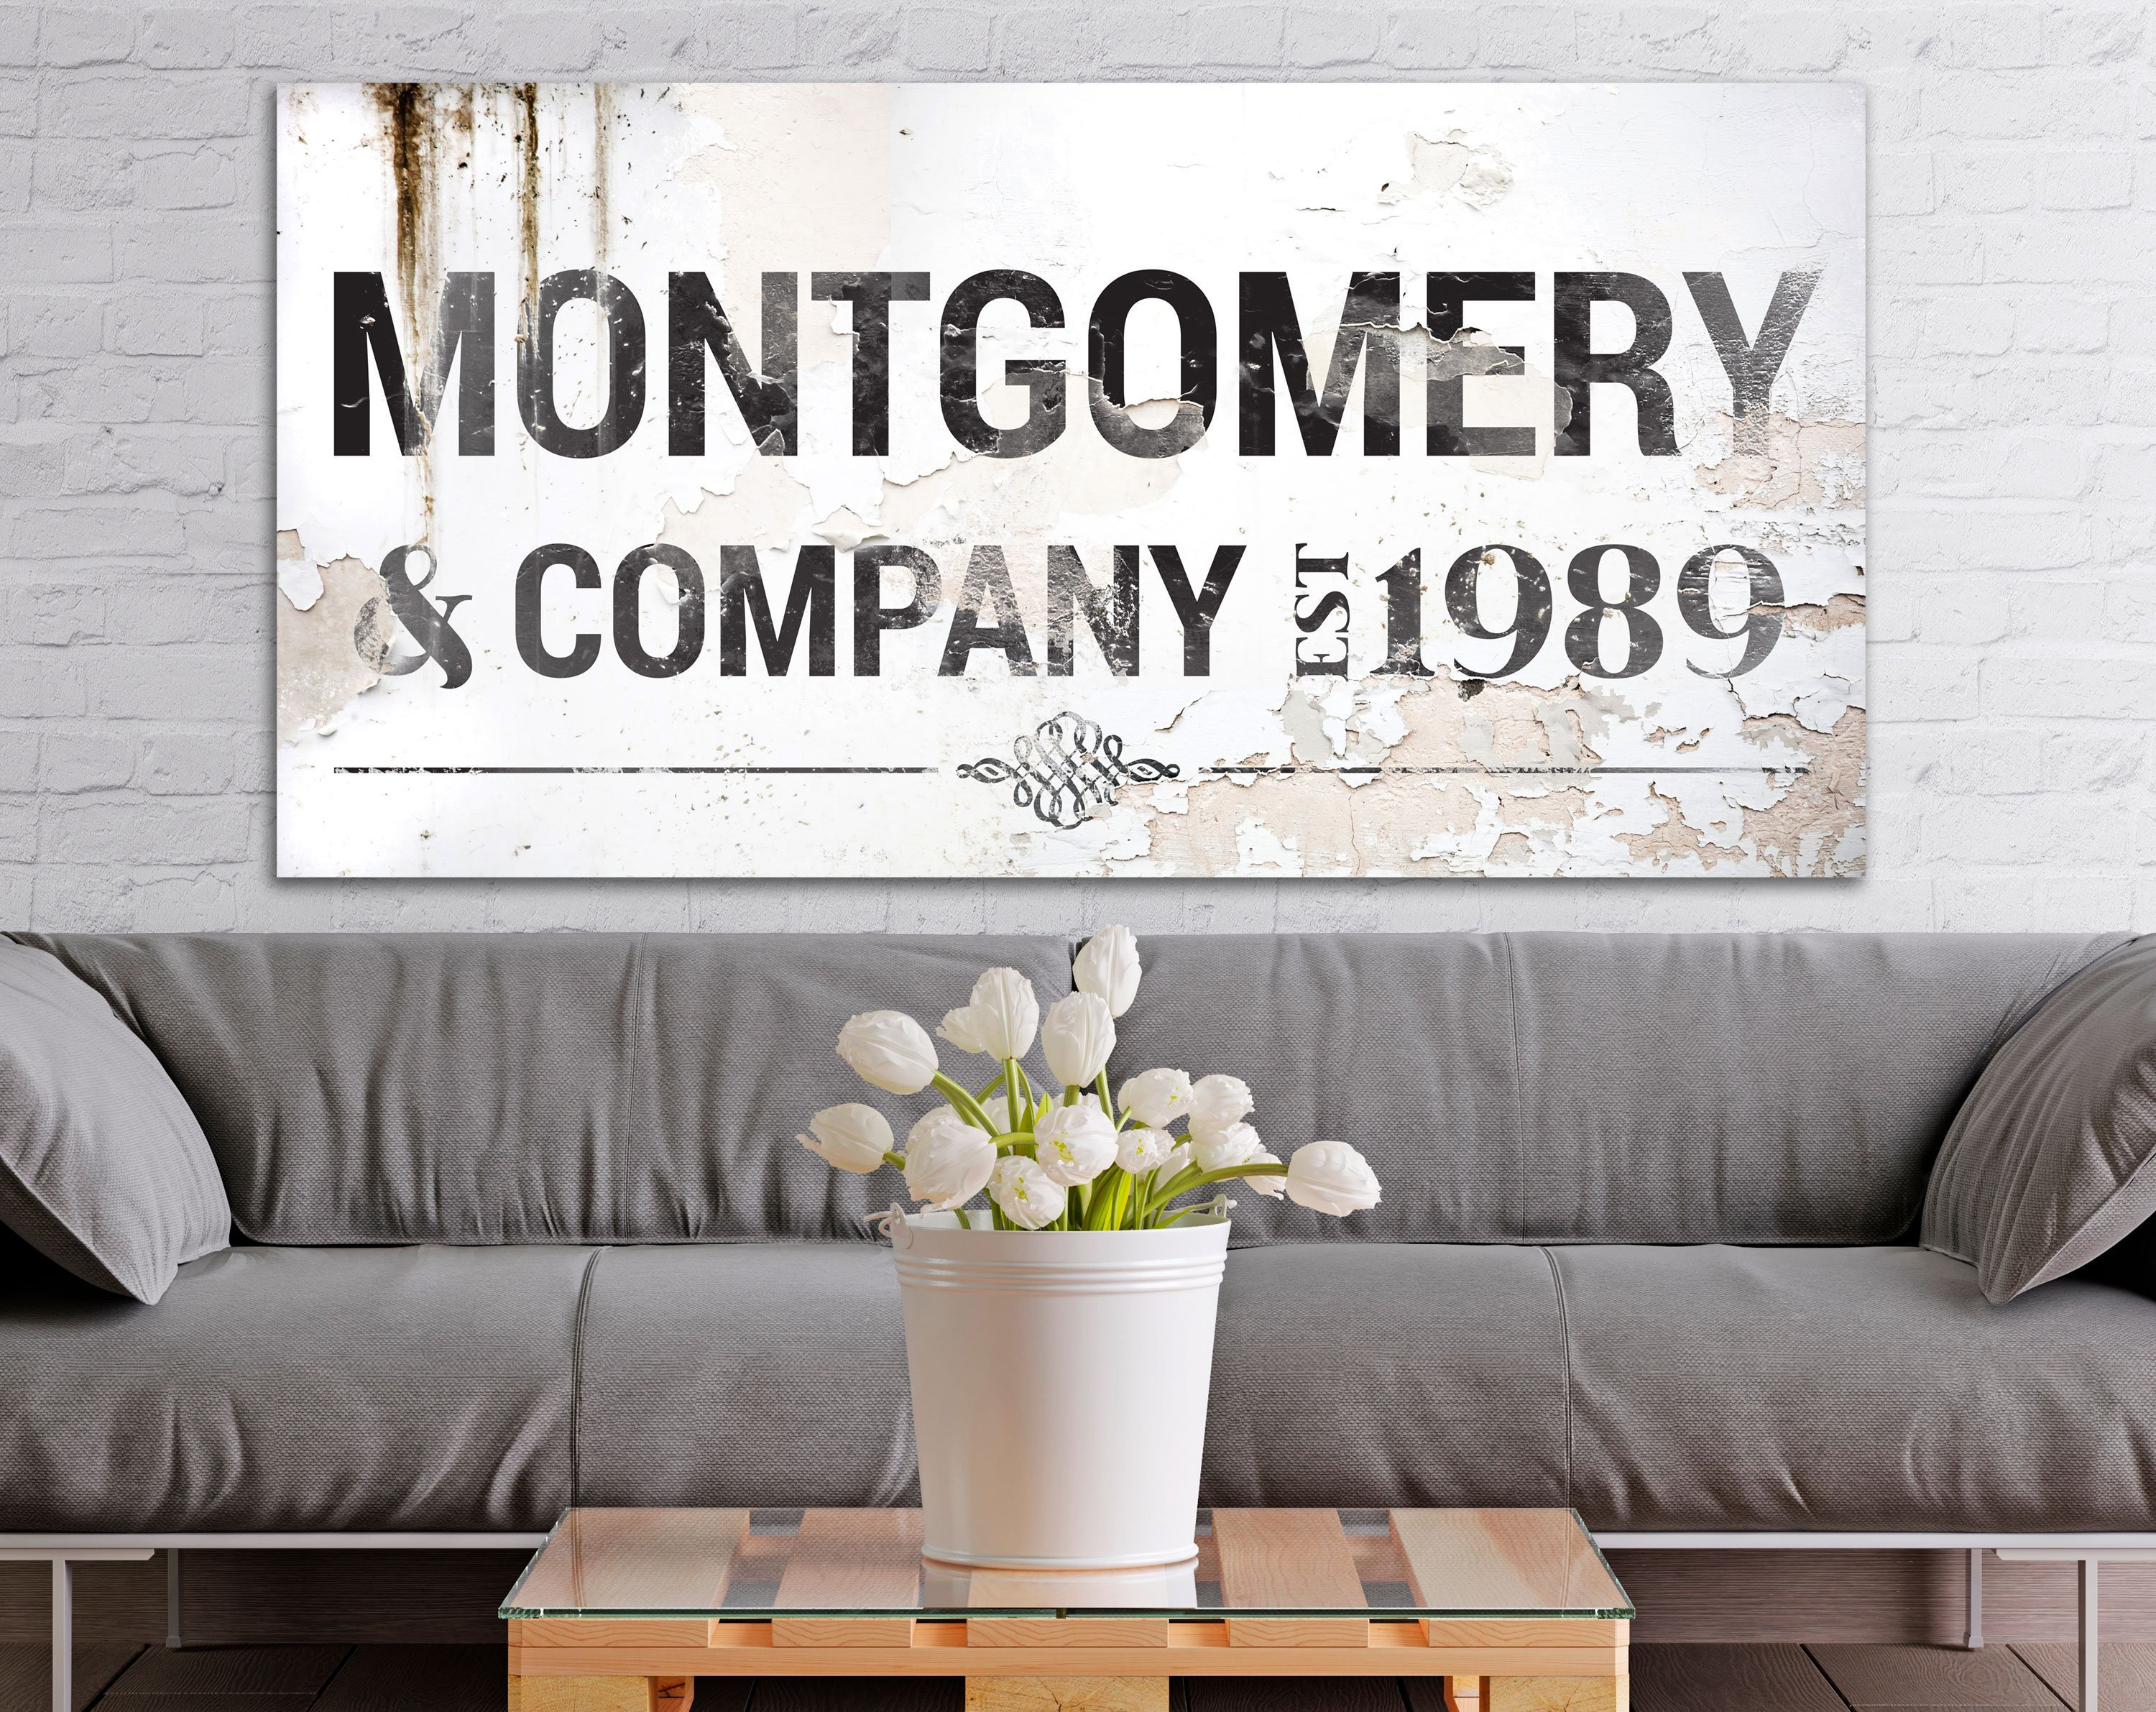 Farmhouse Family Wall Art, Industrial Modern Decor, Large Established Last  Name Sign, Rustic Home Decor Print With Regard To Large Modern Industrial Wall Decor (Photo 20 of 30)